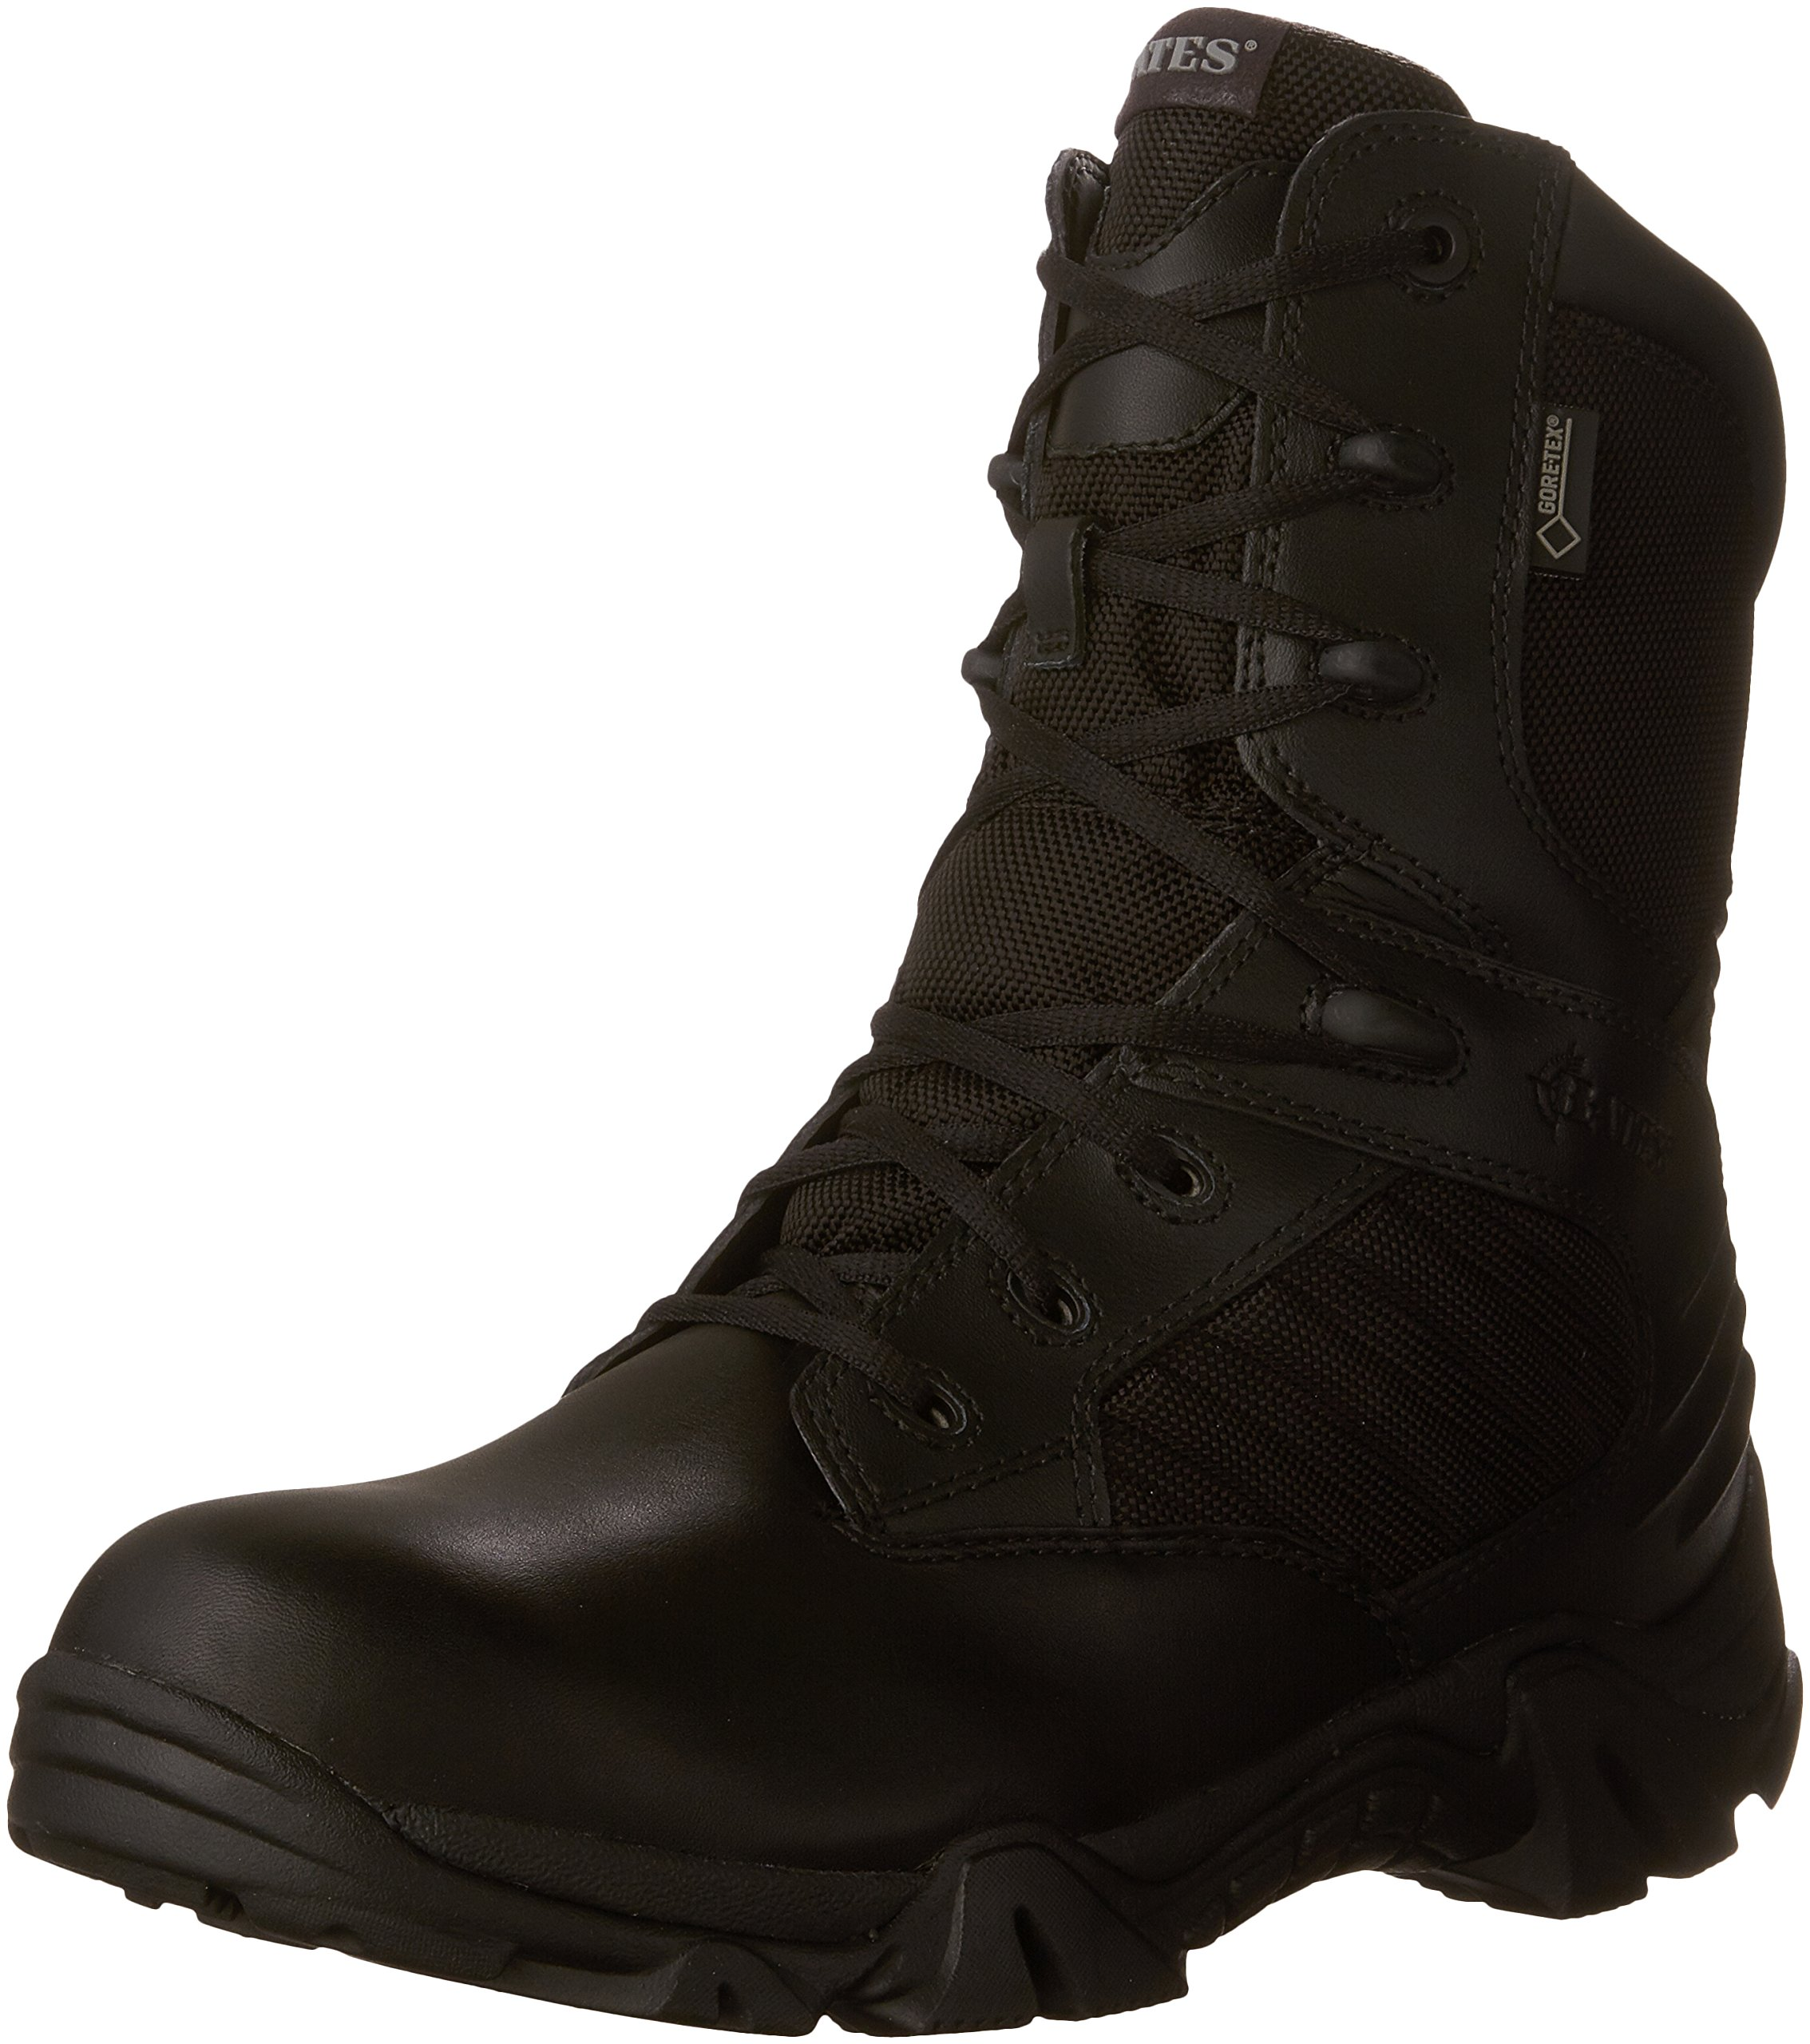 Bates Men's GX-8 8 Inch Ultra-Lites GTX Waterproof Boot, Black, 13 XW US